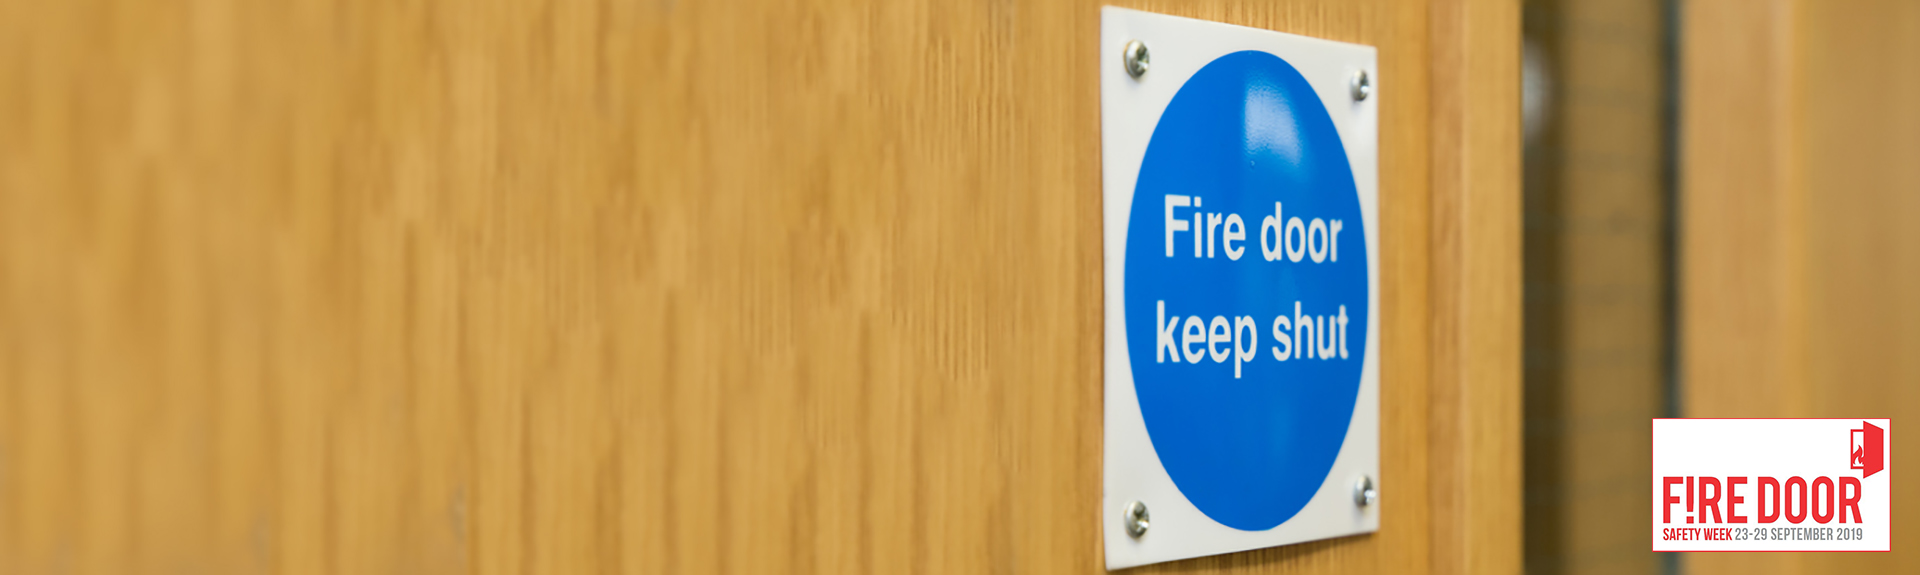 Dorplan - Proud to Support Fire Door Safety Week